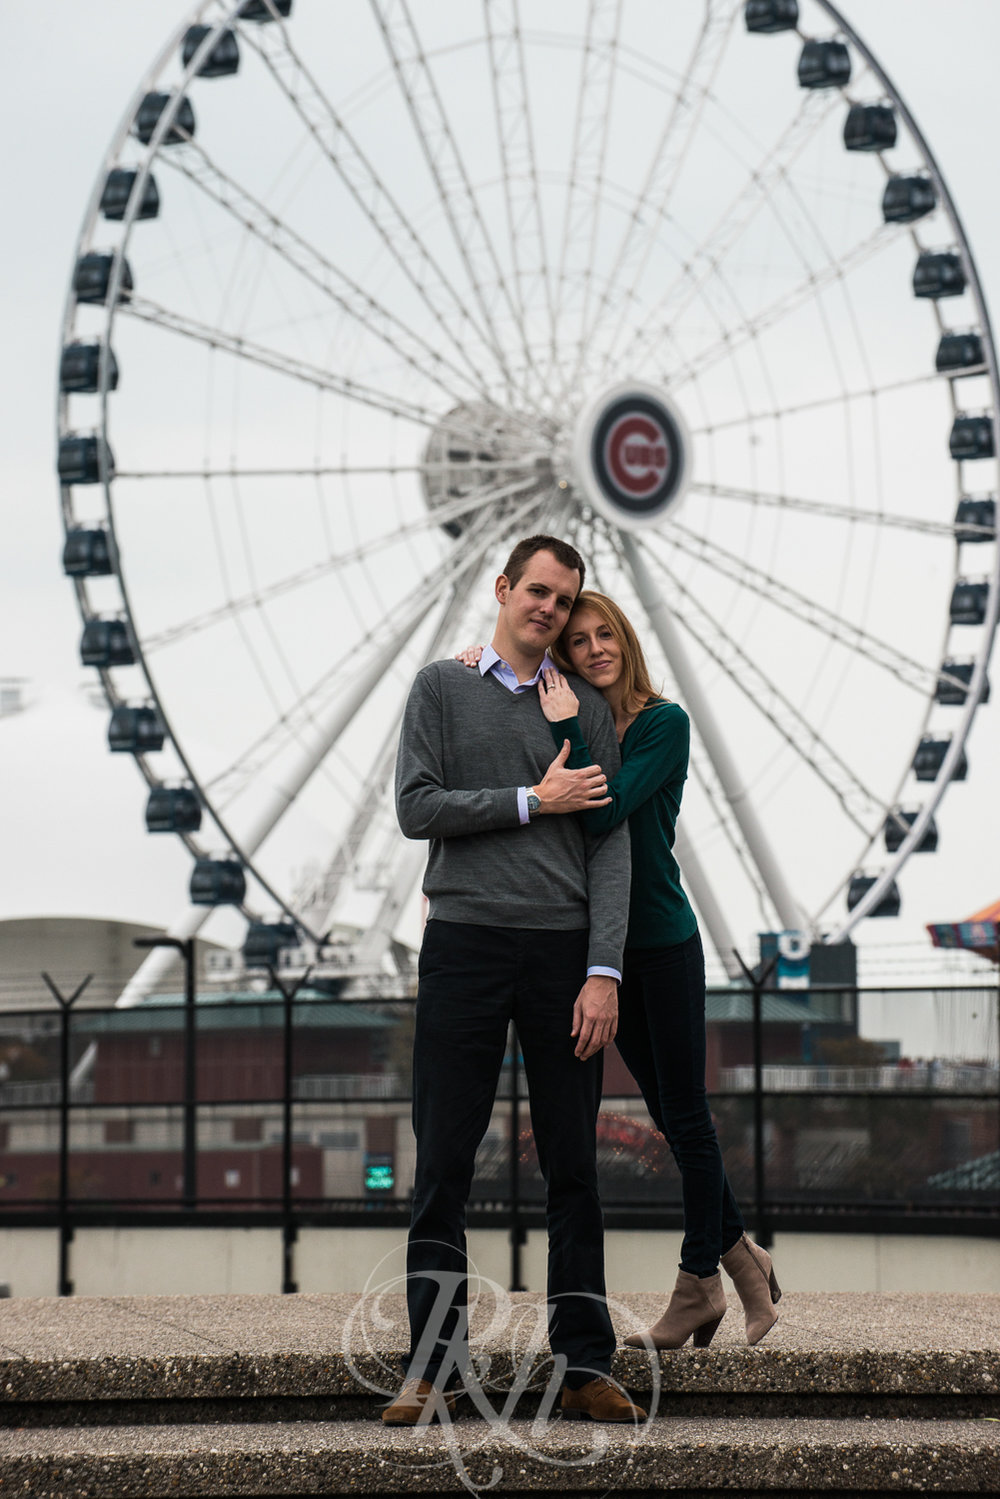 Theresa & Alain - Chicago Engagement Photograhy - RKH Images -7.jpg